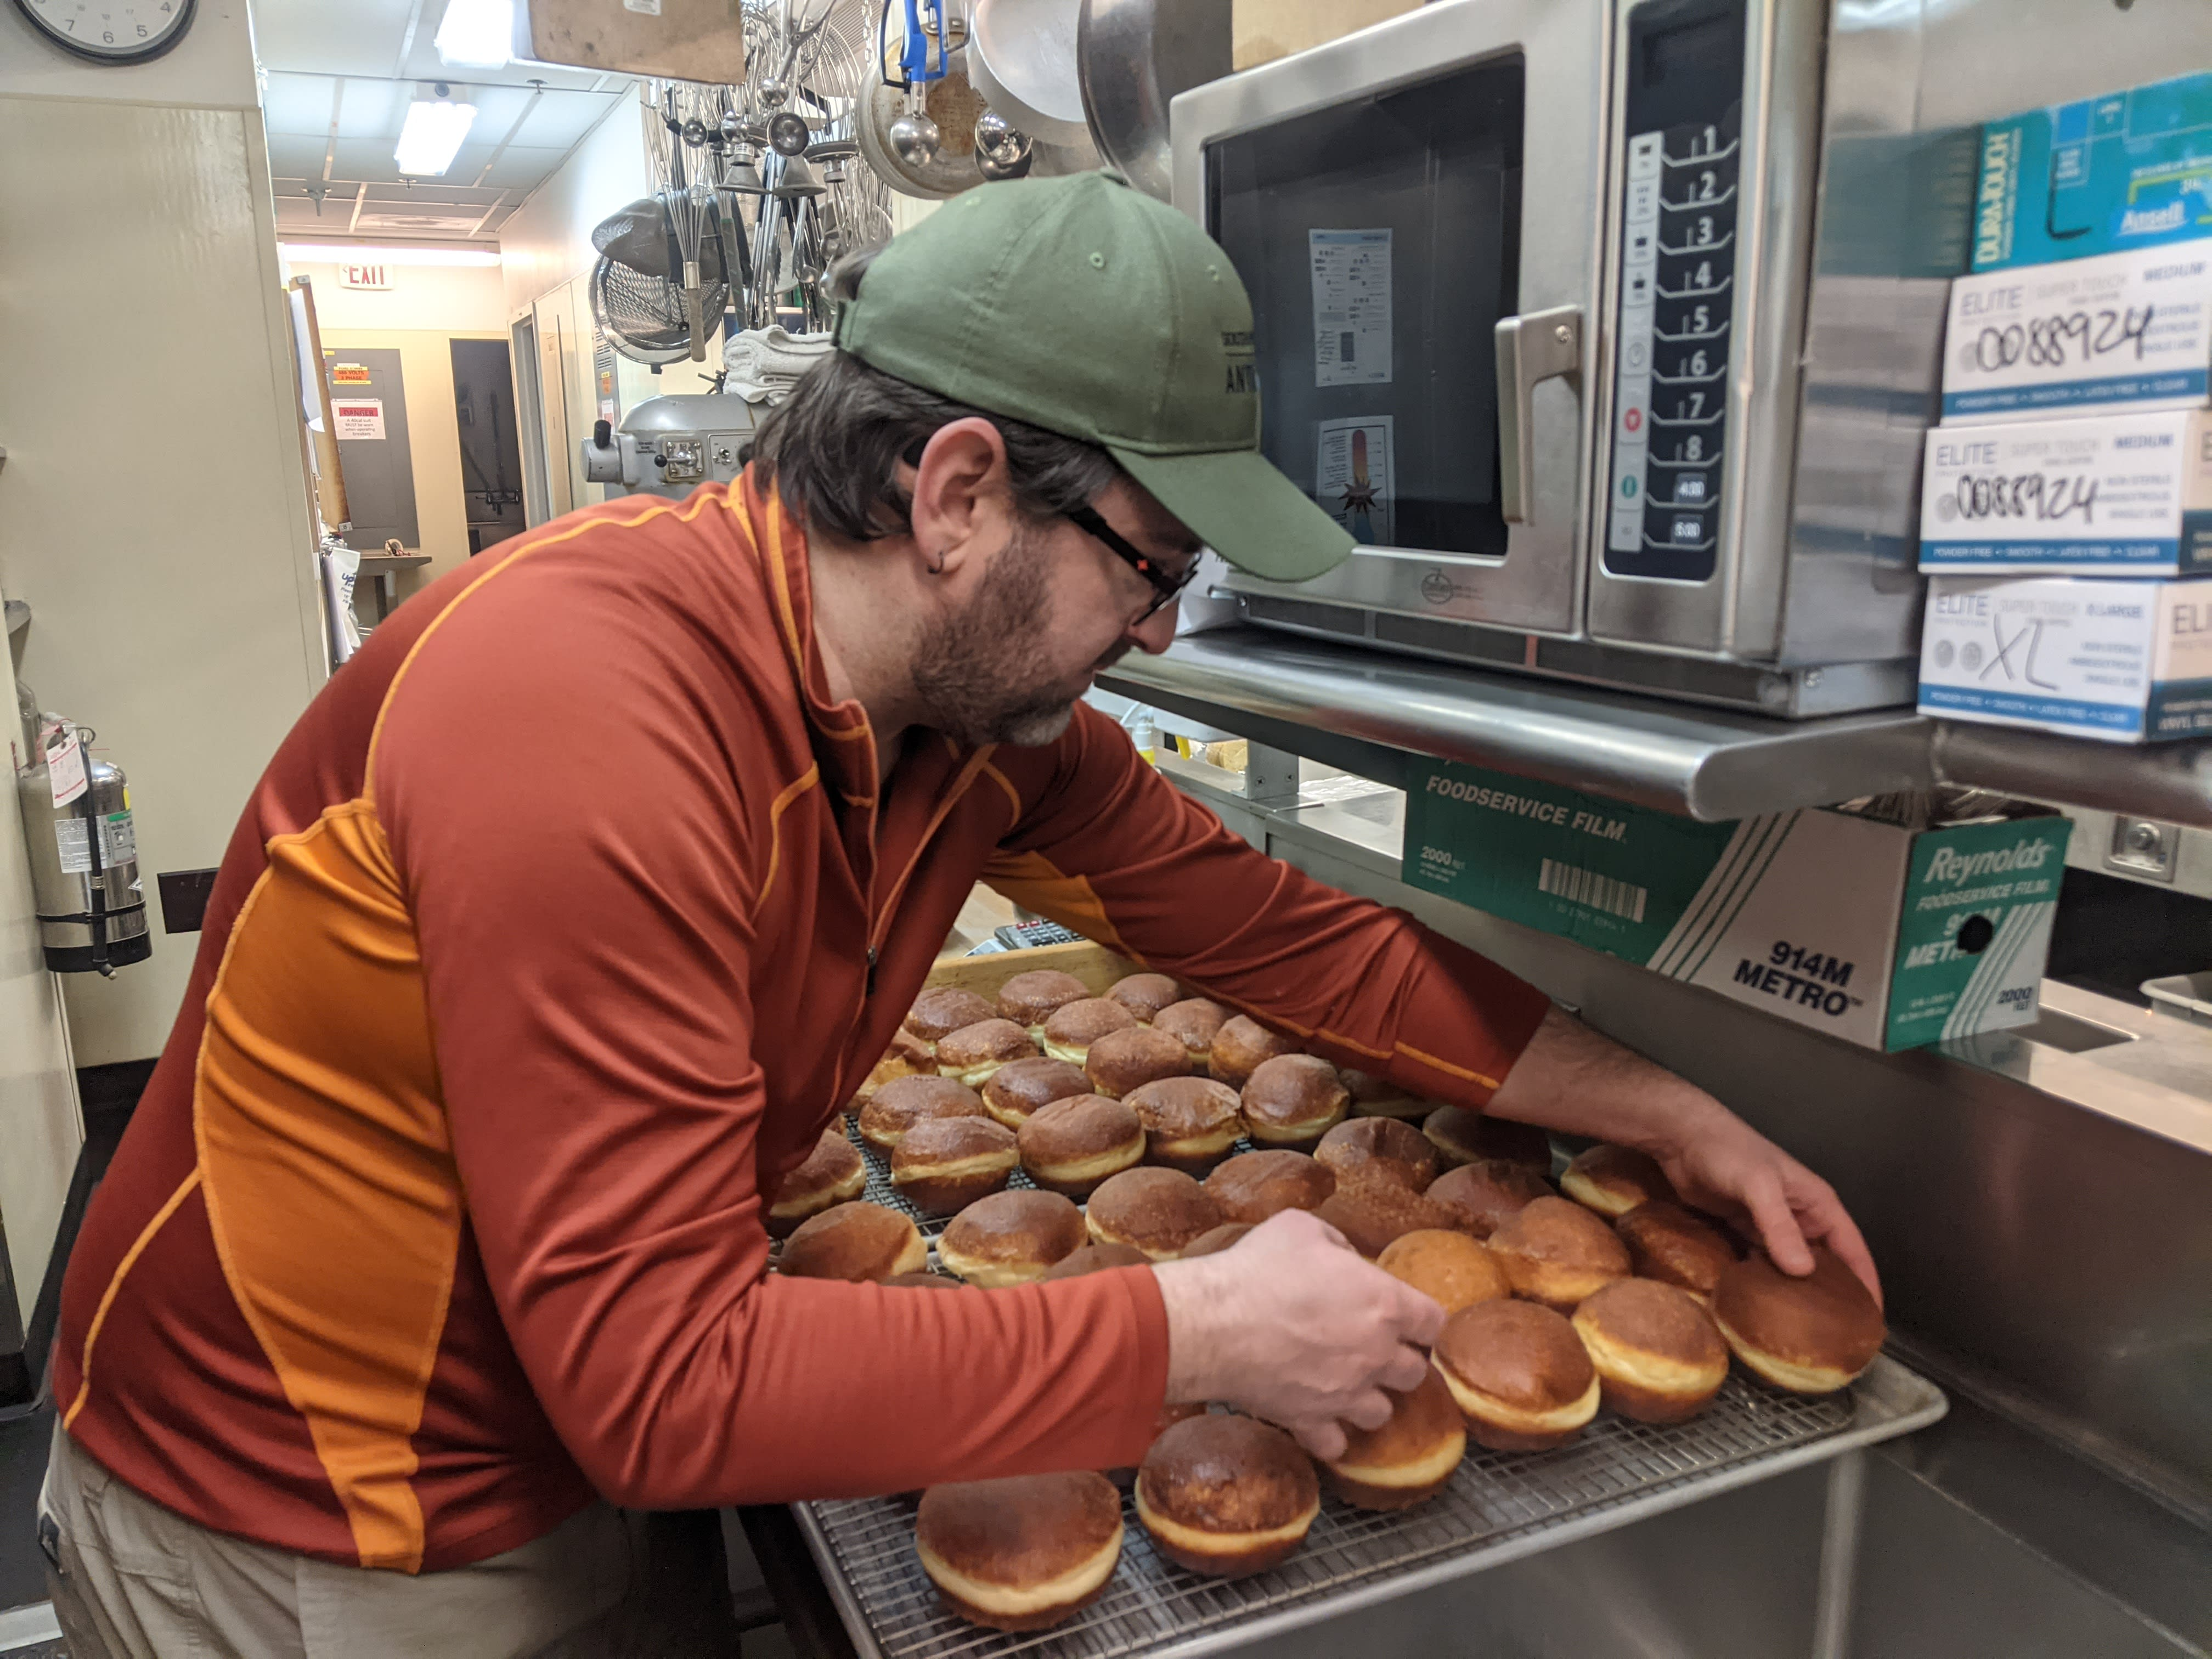 Person arranging donuts on a cooling rack.